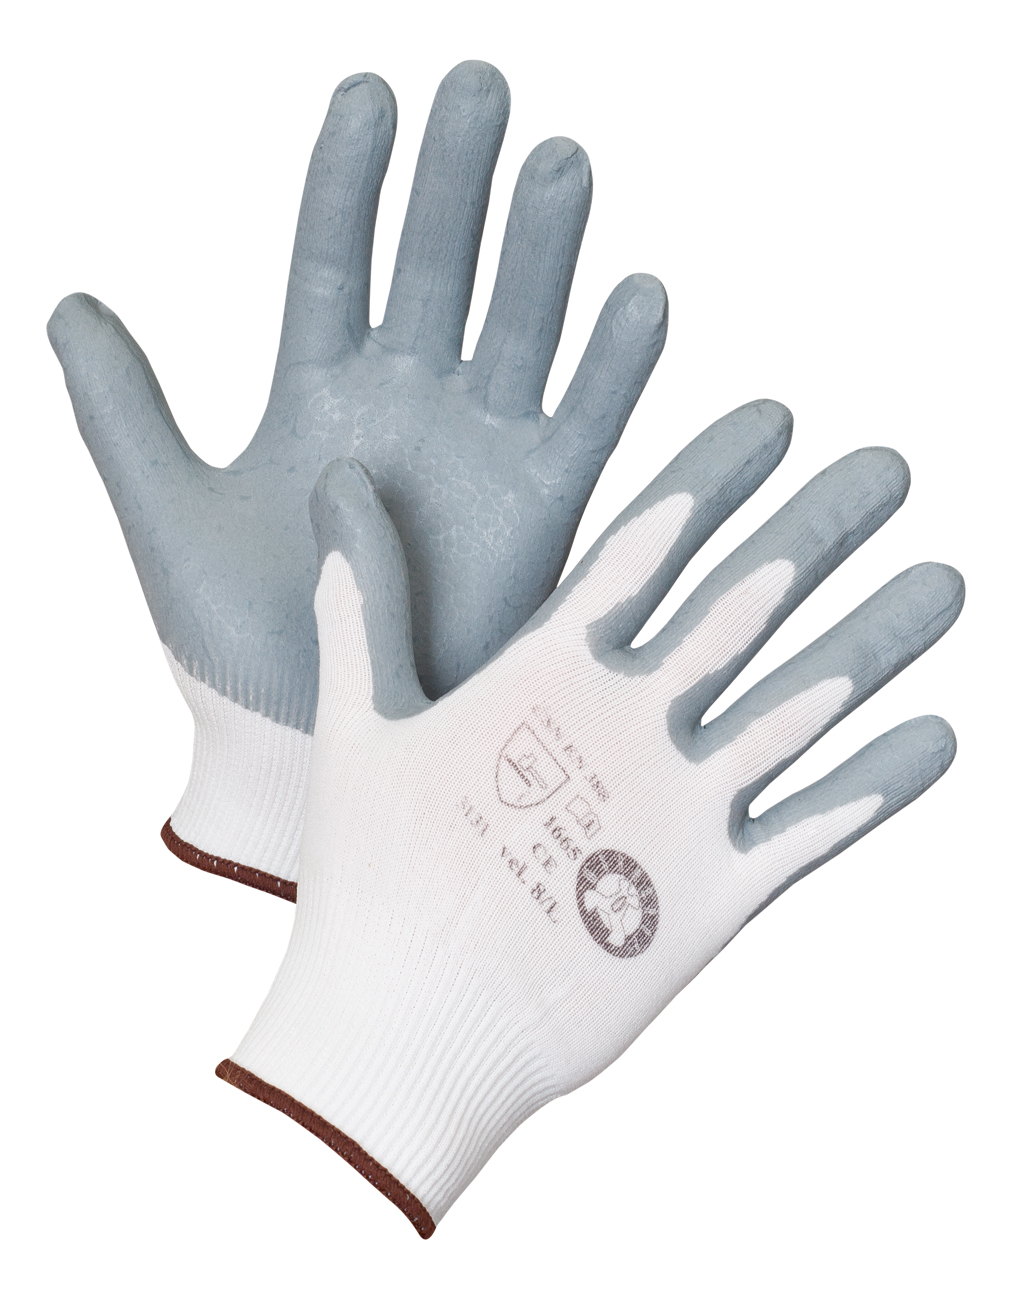 AERO Gloves NitroFoam 1665